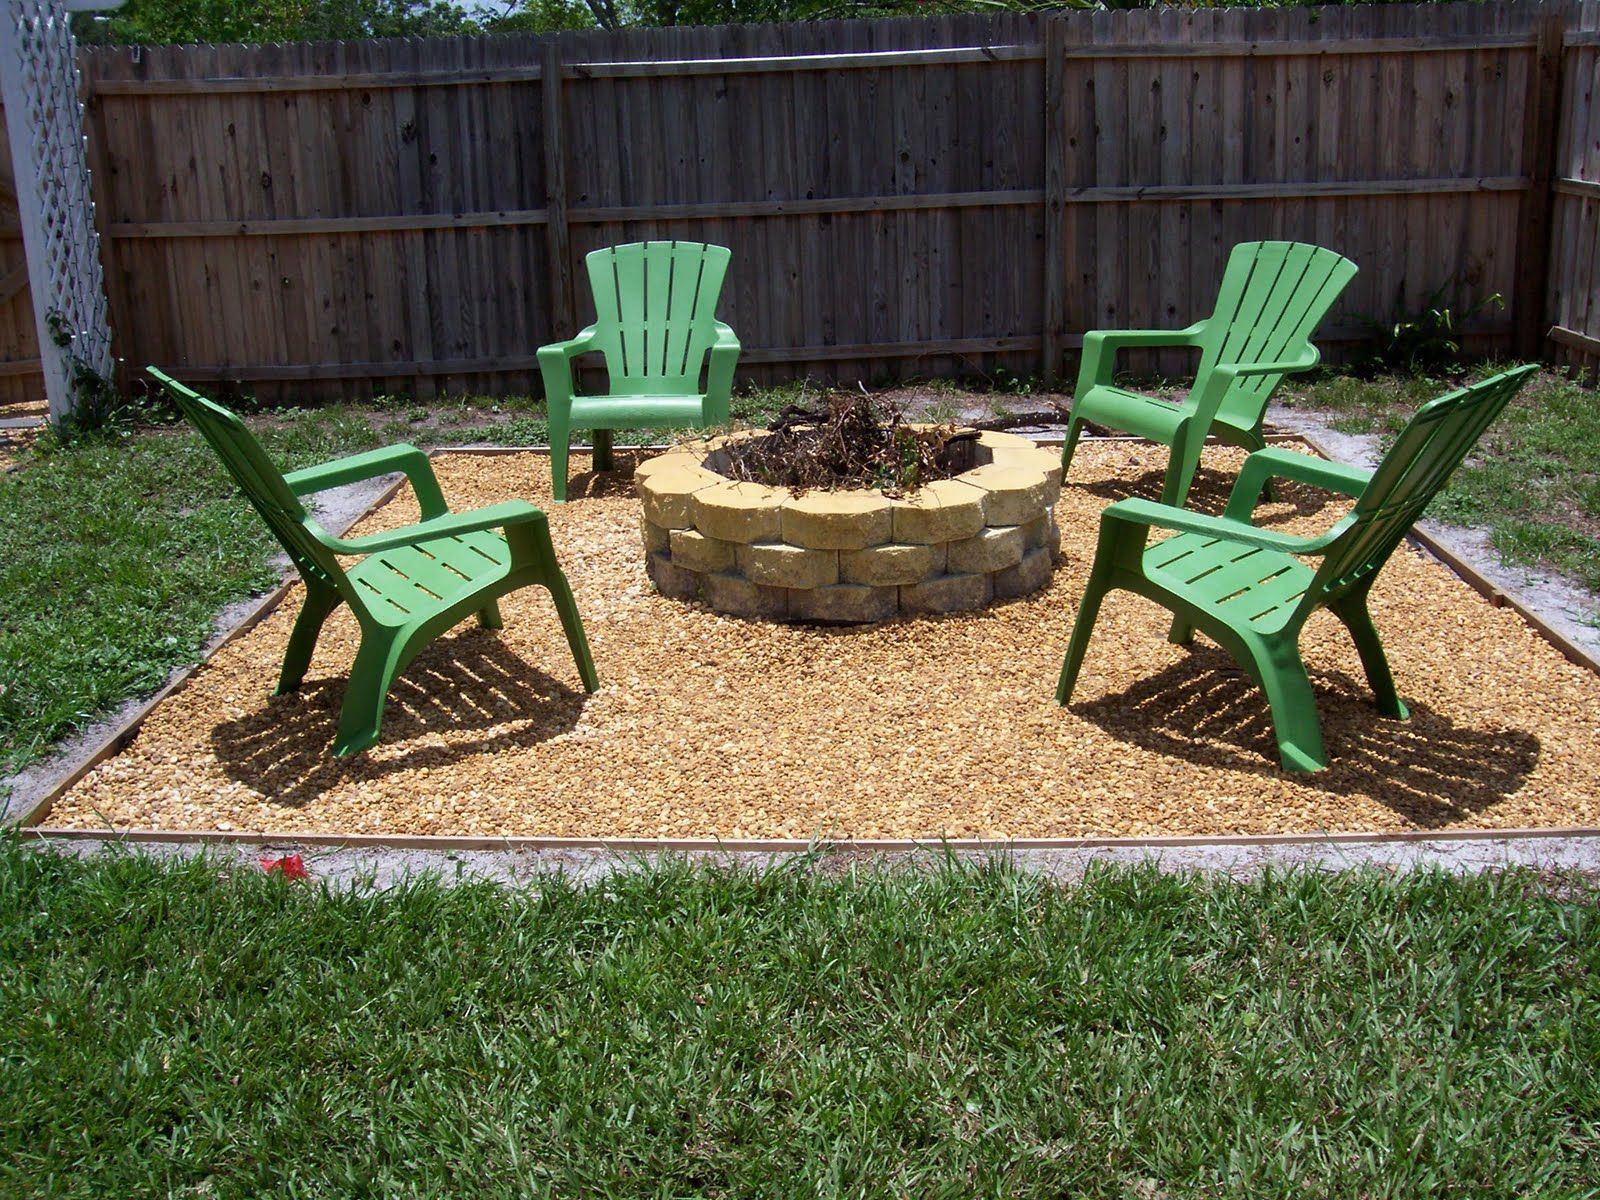 101 Stunning Fire Pit Seating Ideas to Spice Up your Patio